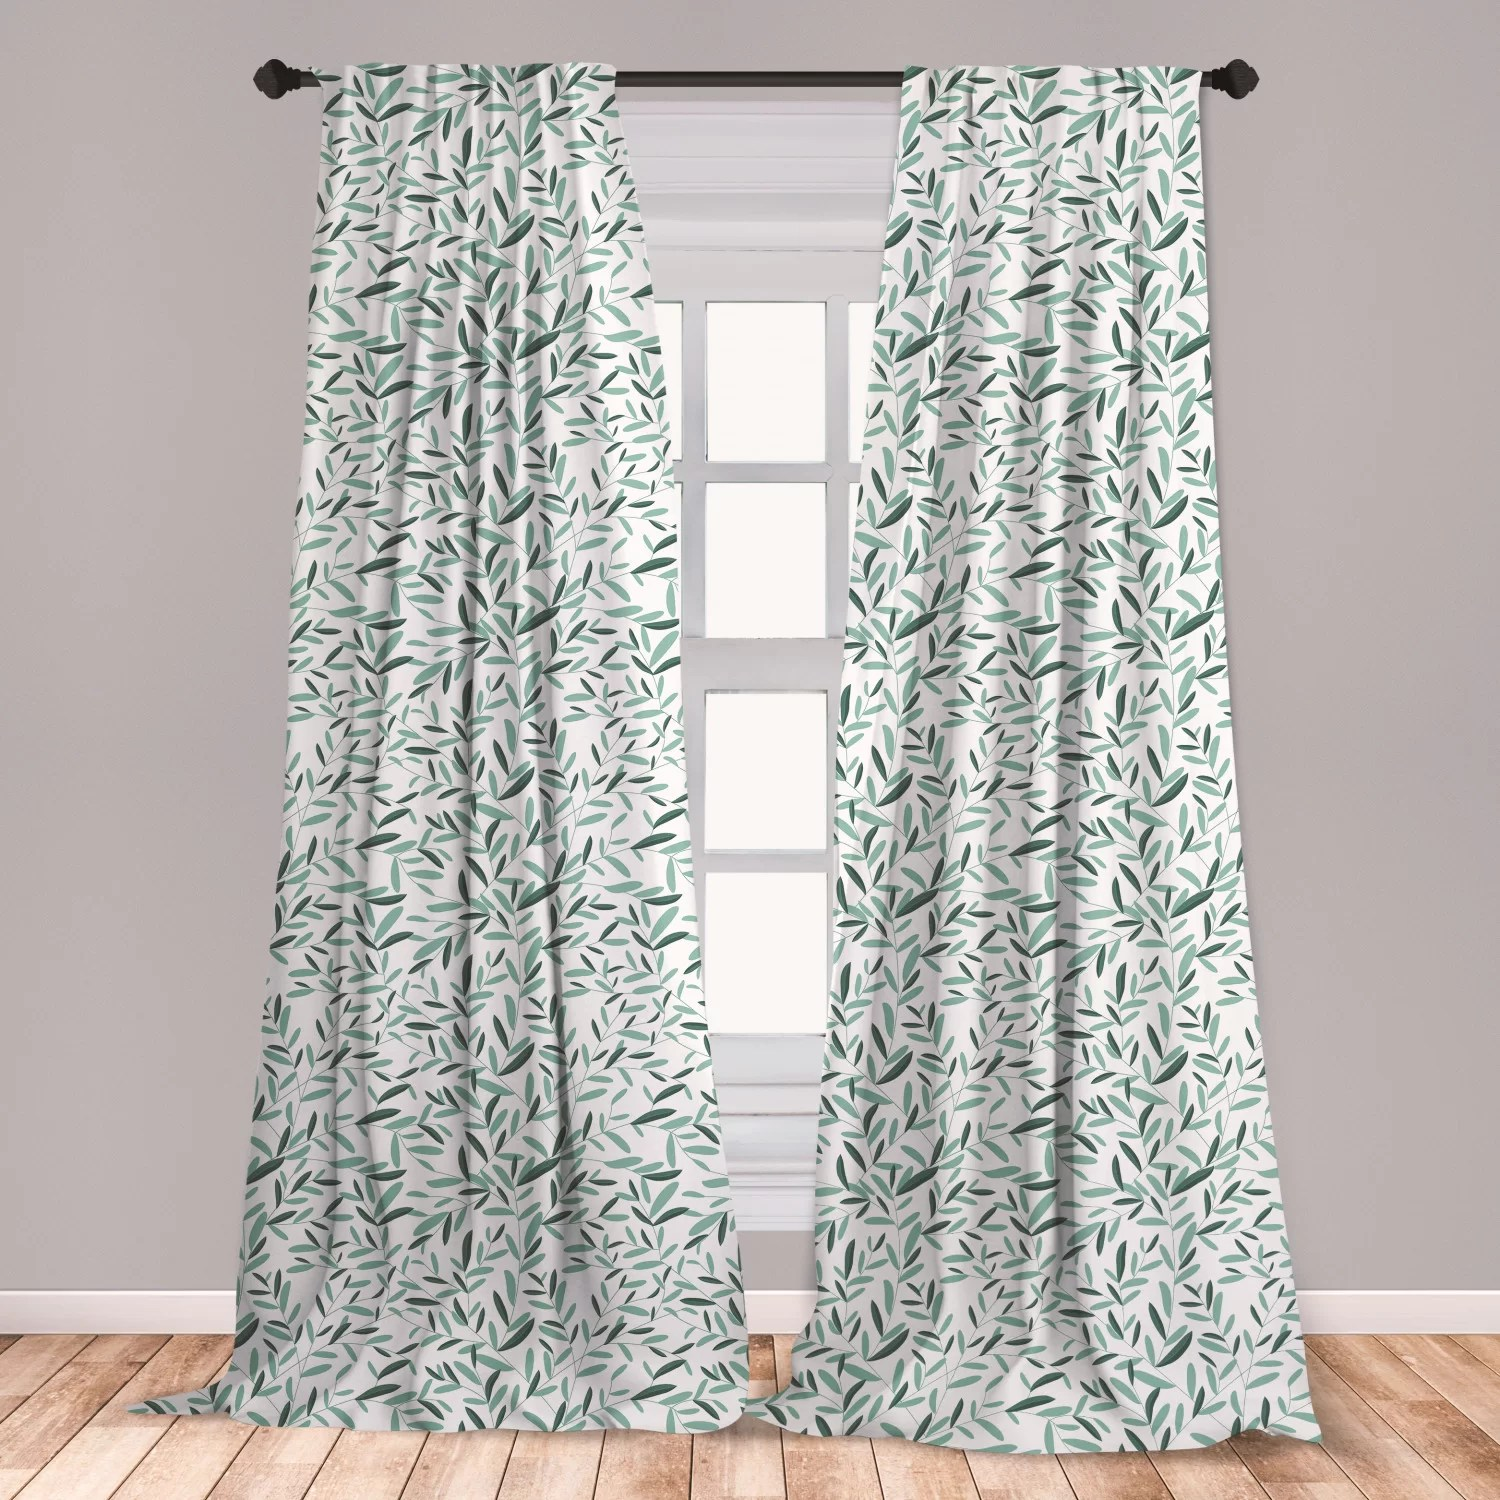 https www wayfair com decor pillows pdp east urban home ambesonne sage window curtains pattern with leaves environment nature simplicity summer spring plants garden lightweight decorative panels set of 2 with rod pocket 56 x 63 reseda green white ebkt4081 html